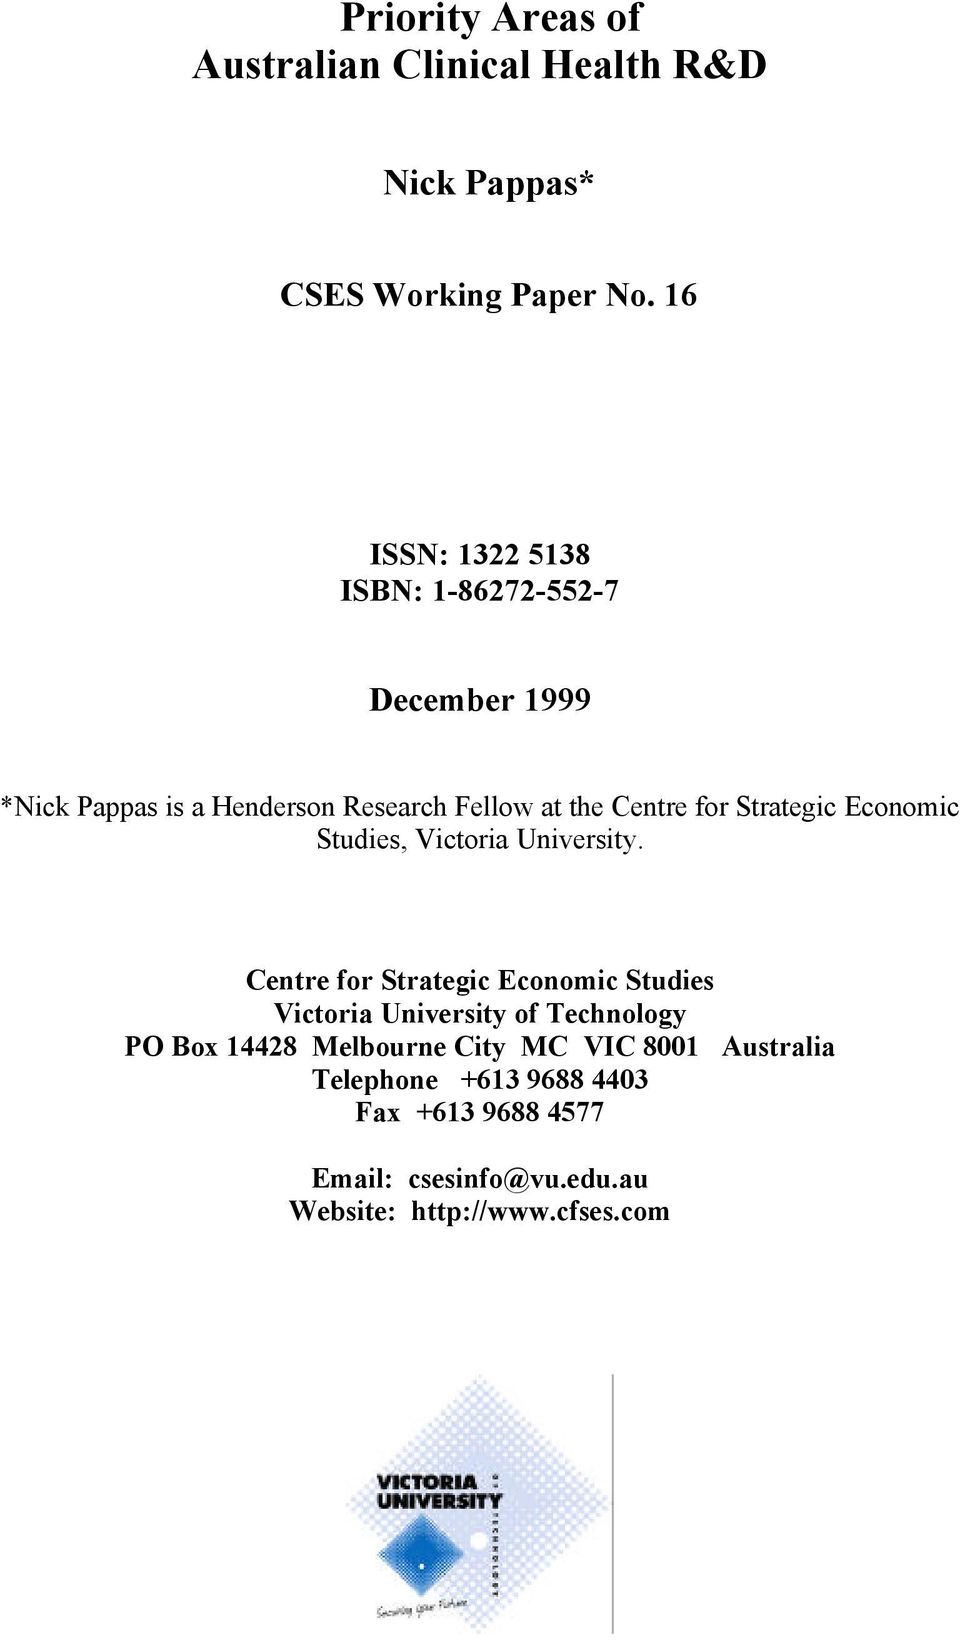 Strategic Economic Studies, Victoria University.